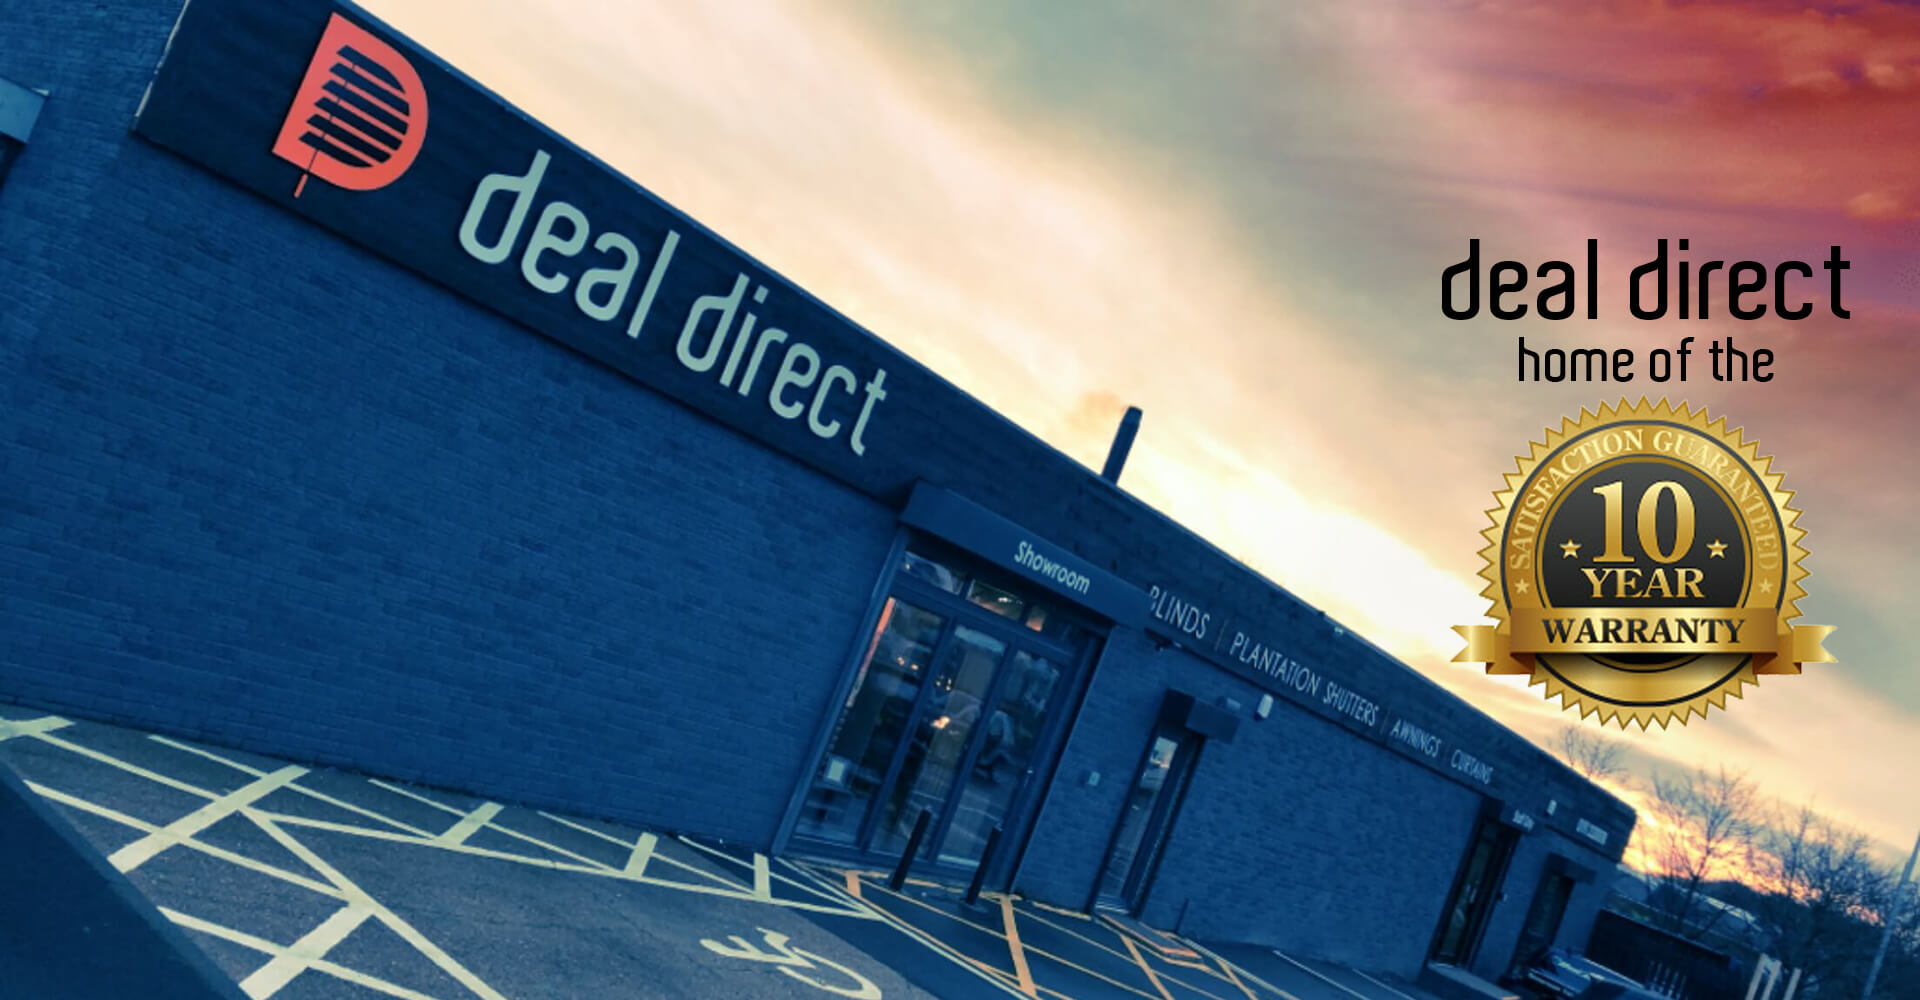 Deal Direct Showroom Outside